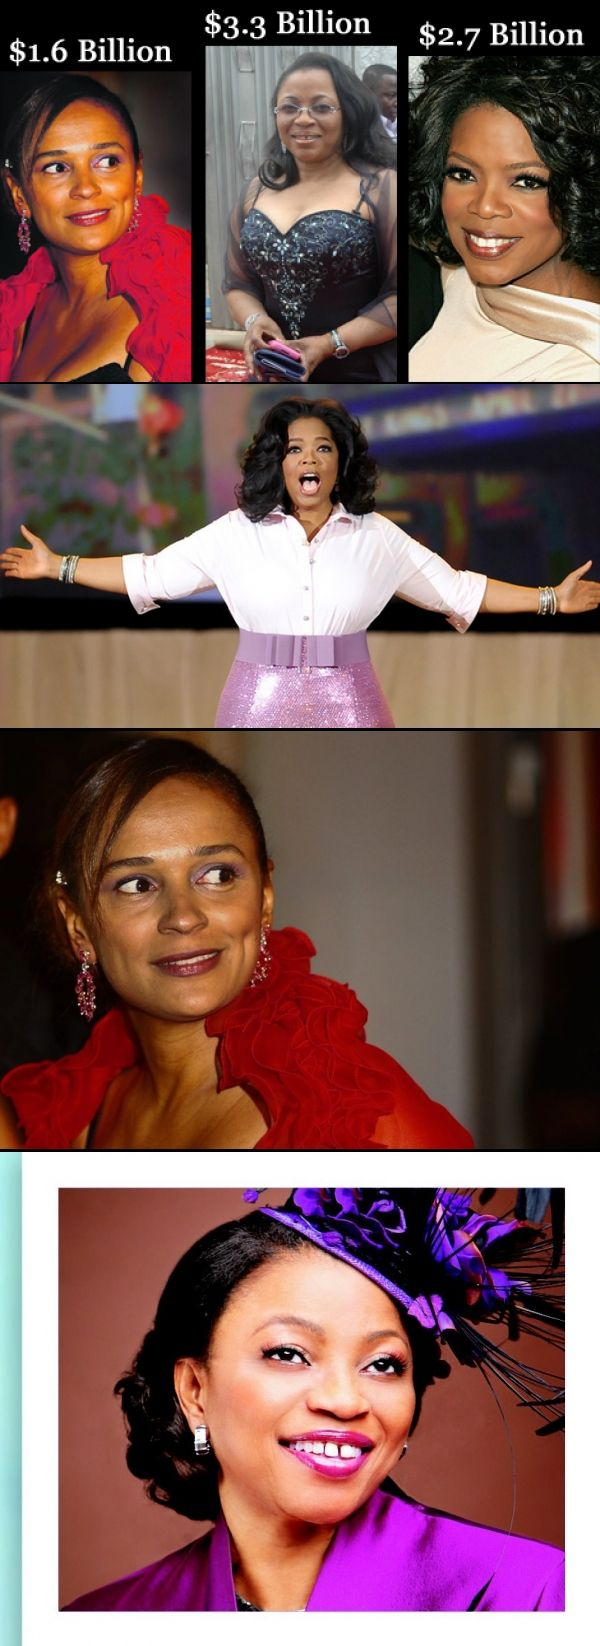 Lady O was actually one of the 1st acknowledged black billionairess. Isabel Dos Santos wealth has gone way over the magic number. Some estimate her fortune between $1.3 to $1.6 billion. Much of Isabel's wealth is derived from her holdings in publicly traded European firms. Folorunsho Alakija from Nigeria is now planet Earth's richest black woman. Conservative estimates put her net worth anywhere between $3.2 to $3.6 billion. Alakija's wealth is from the Nigeria's booming oil business.